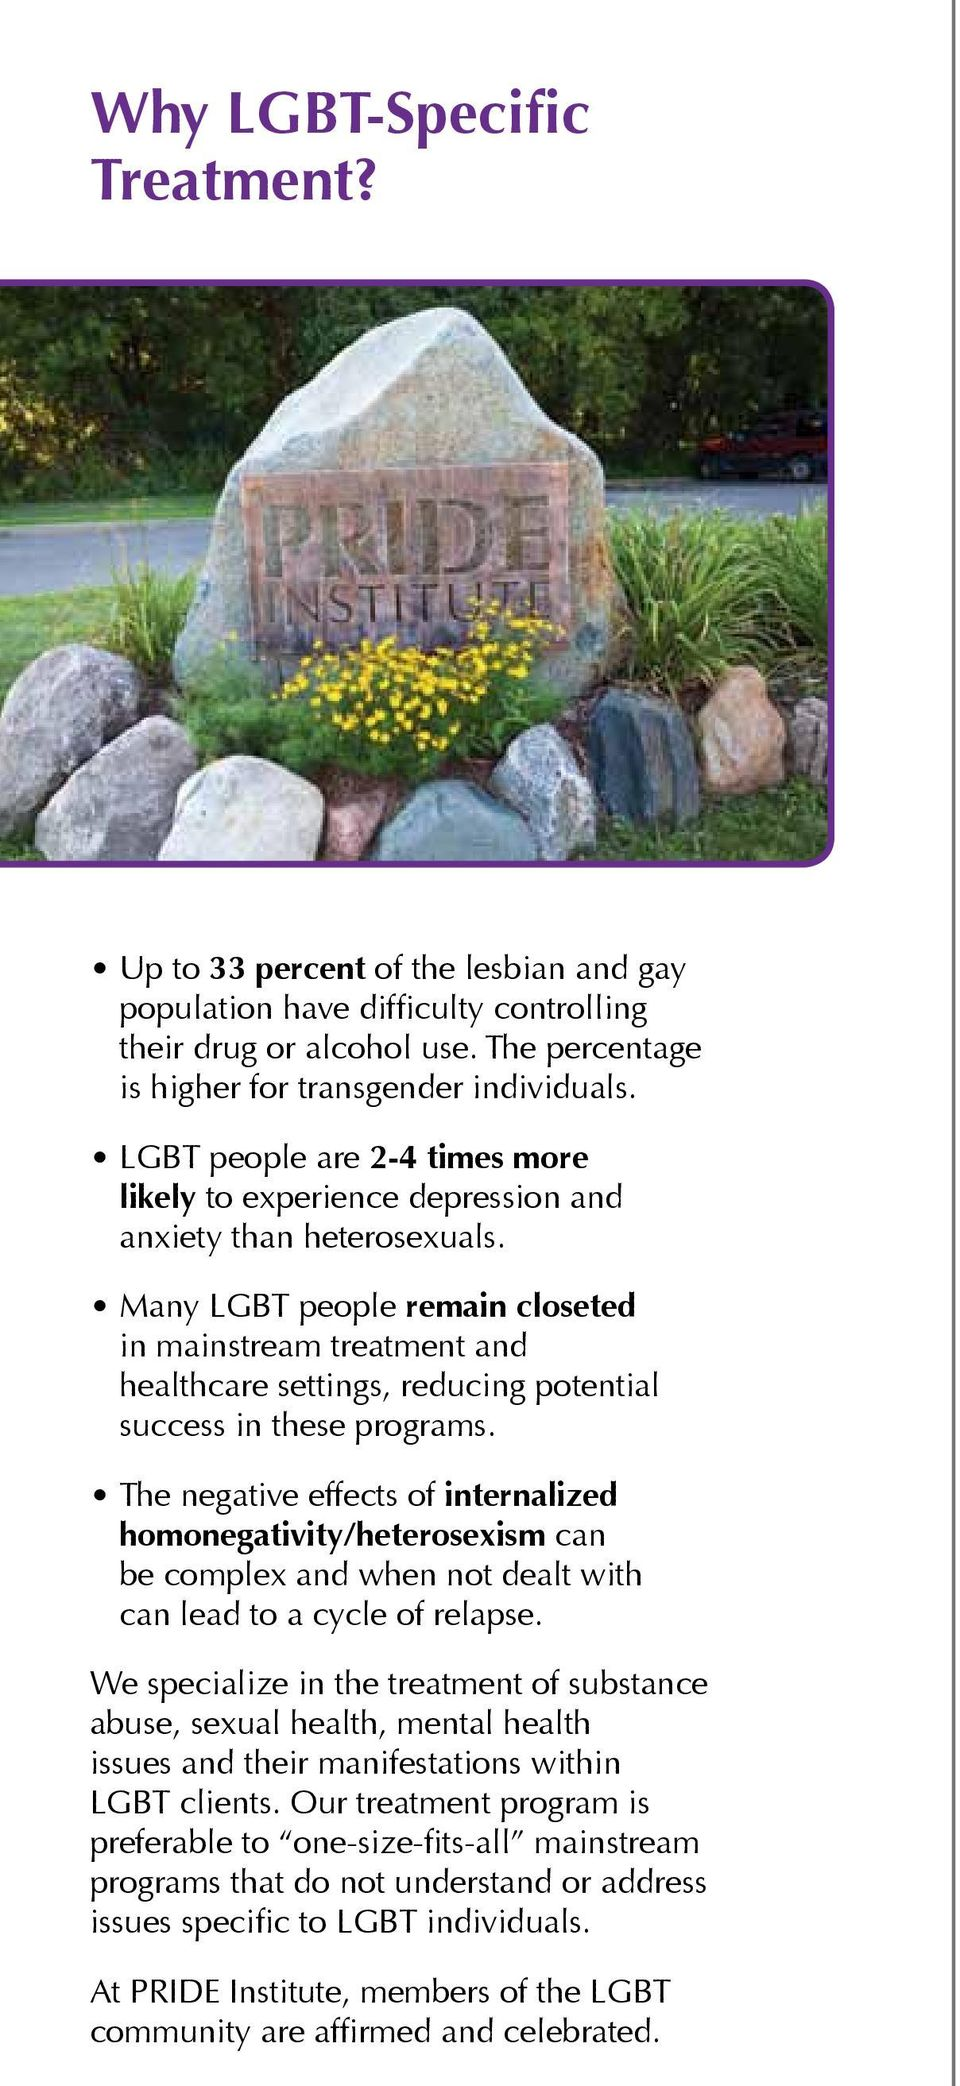 Many LGBT people remain closeted in mainstream treatment and healthcare settings, reducing potential success in these programs.